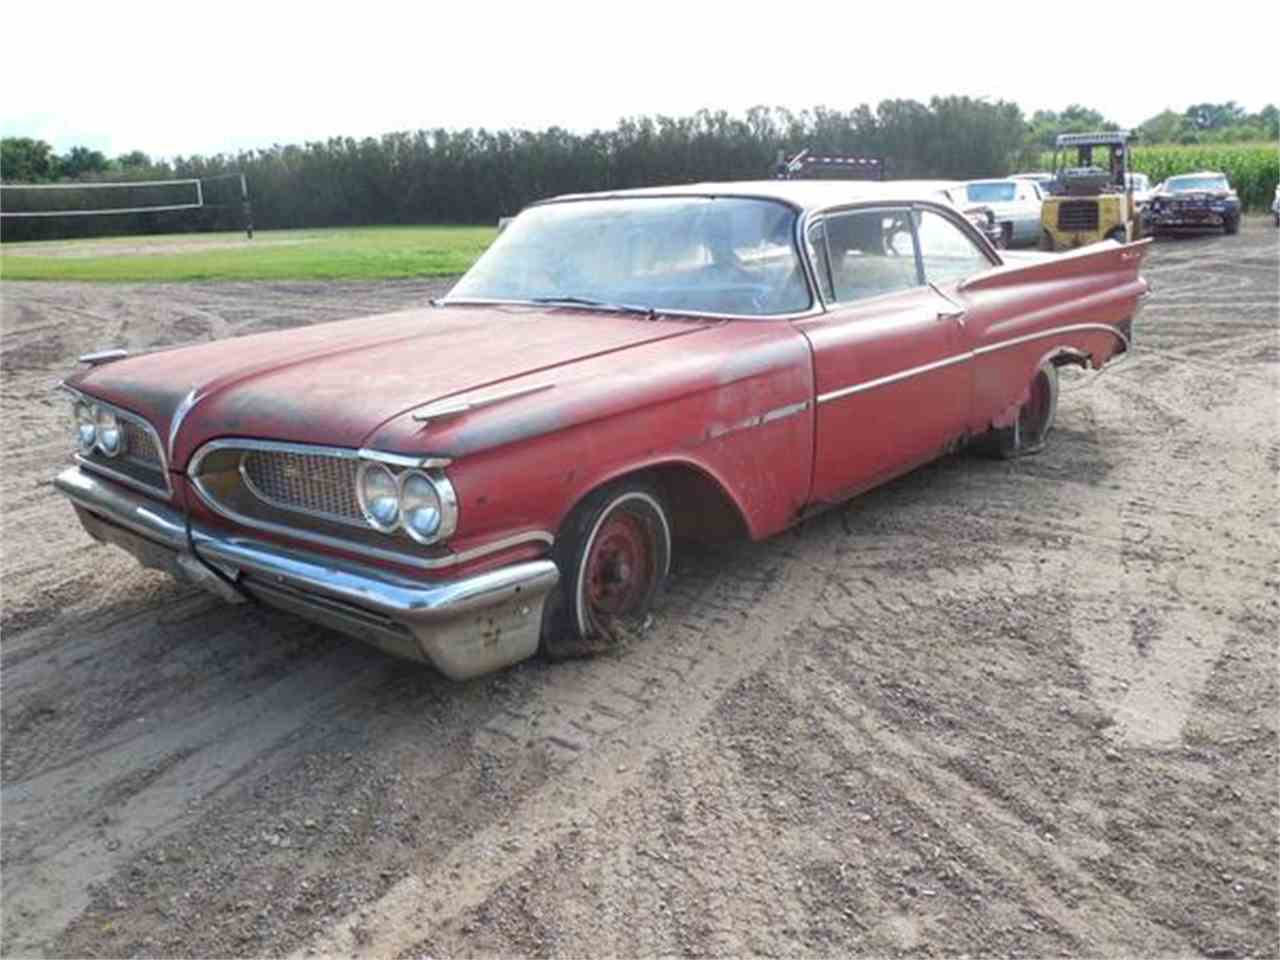 Pontiac Catalina I 1959 - 1960 Sedan-Hardtop #6